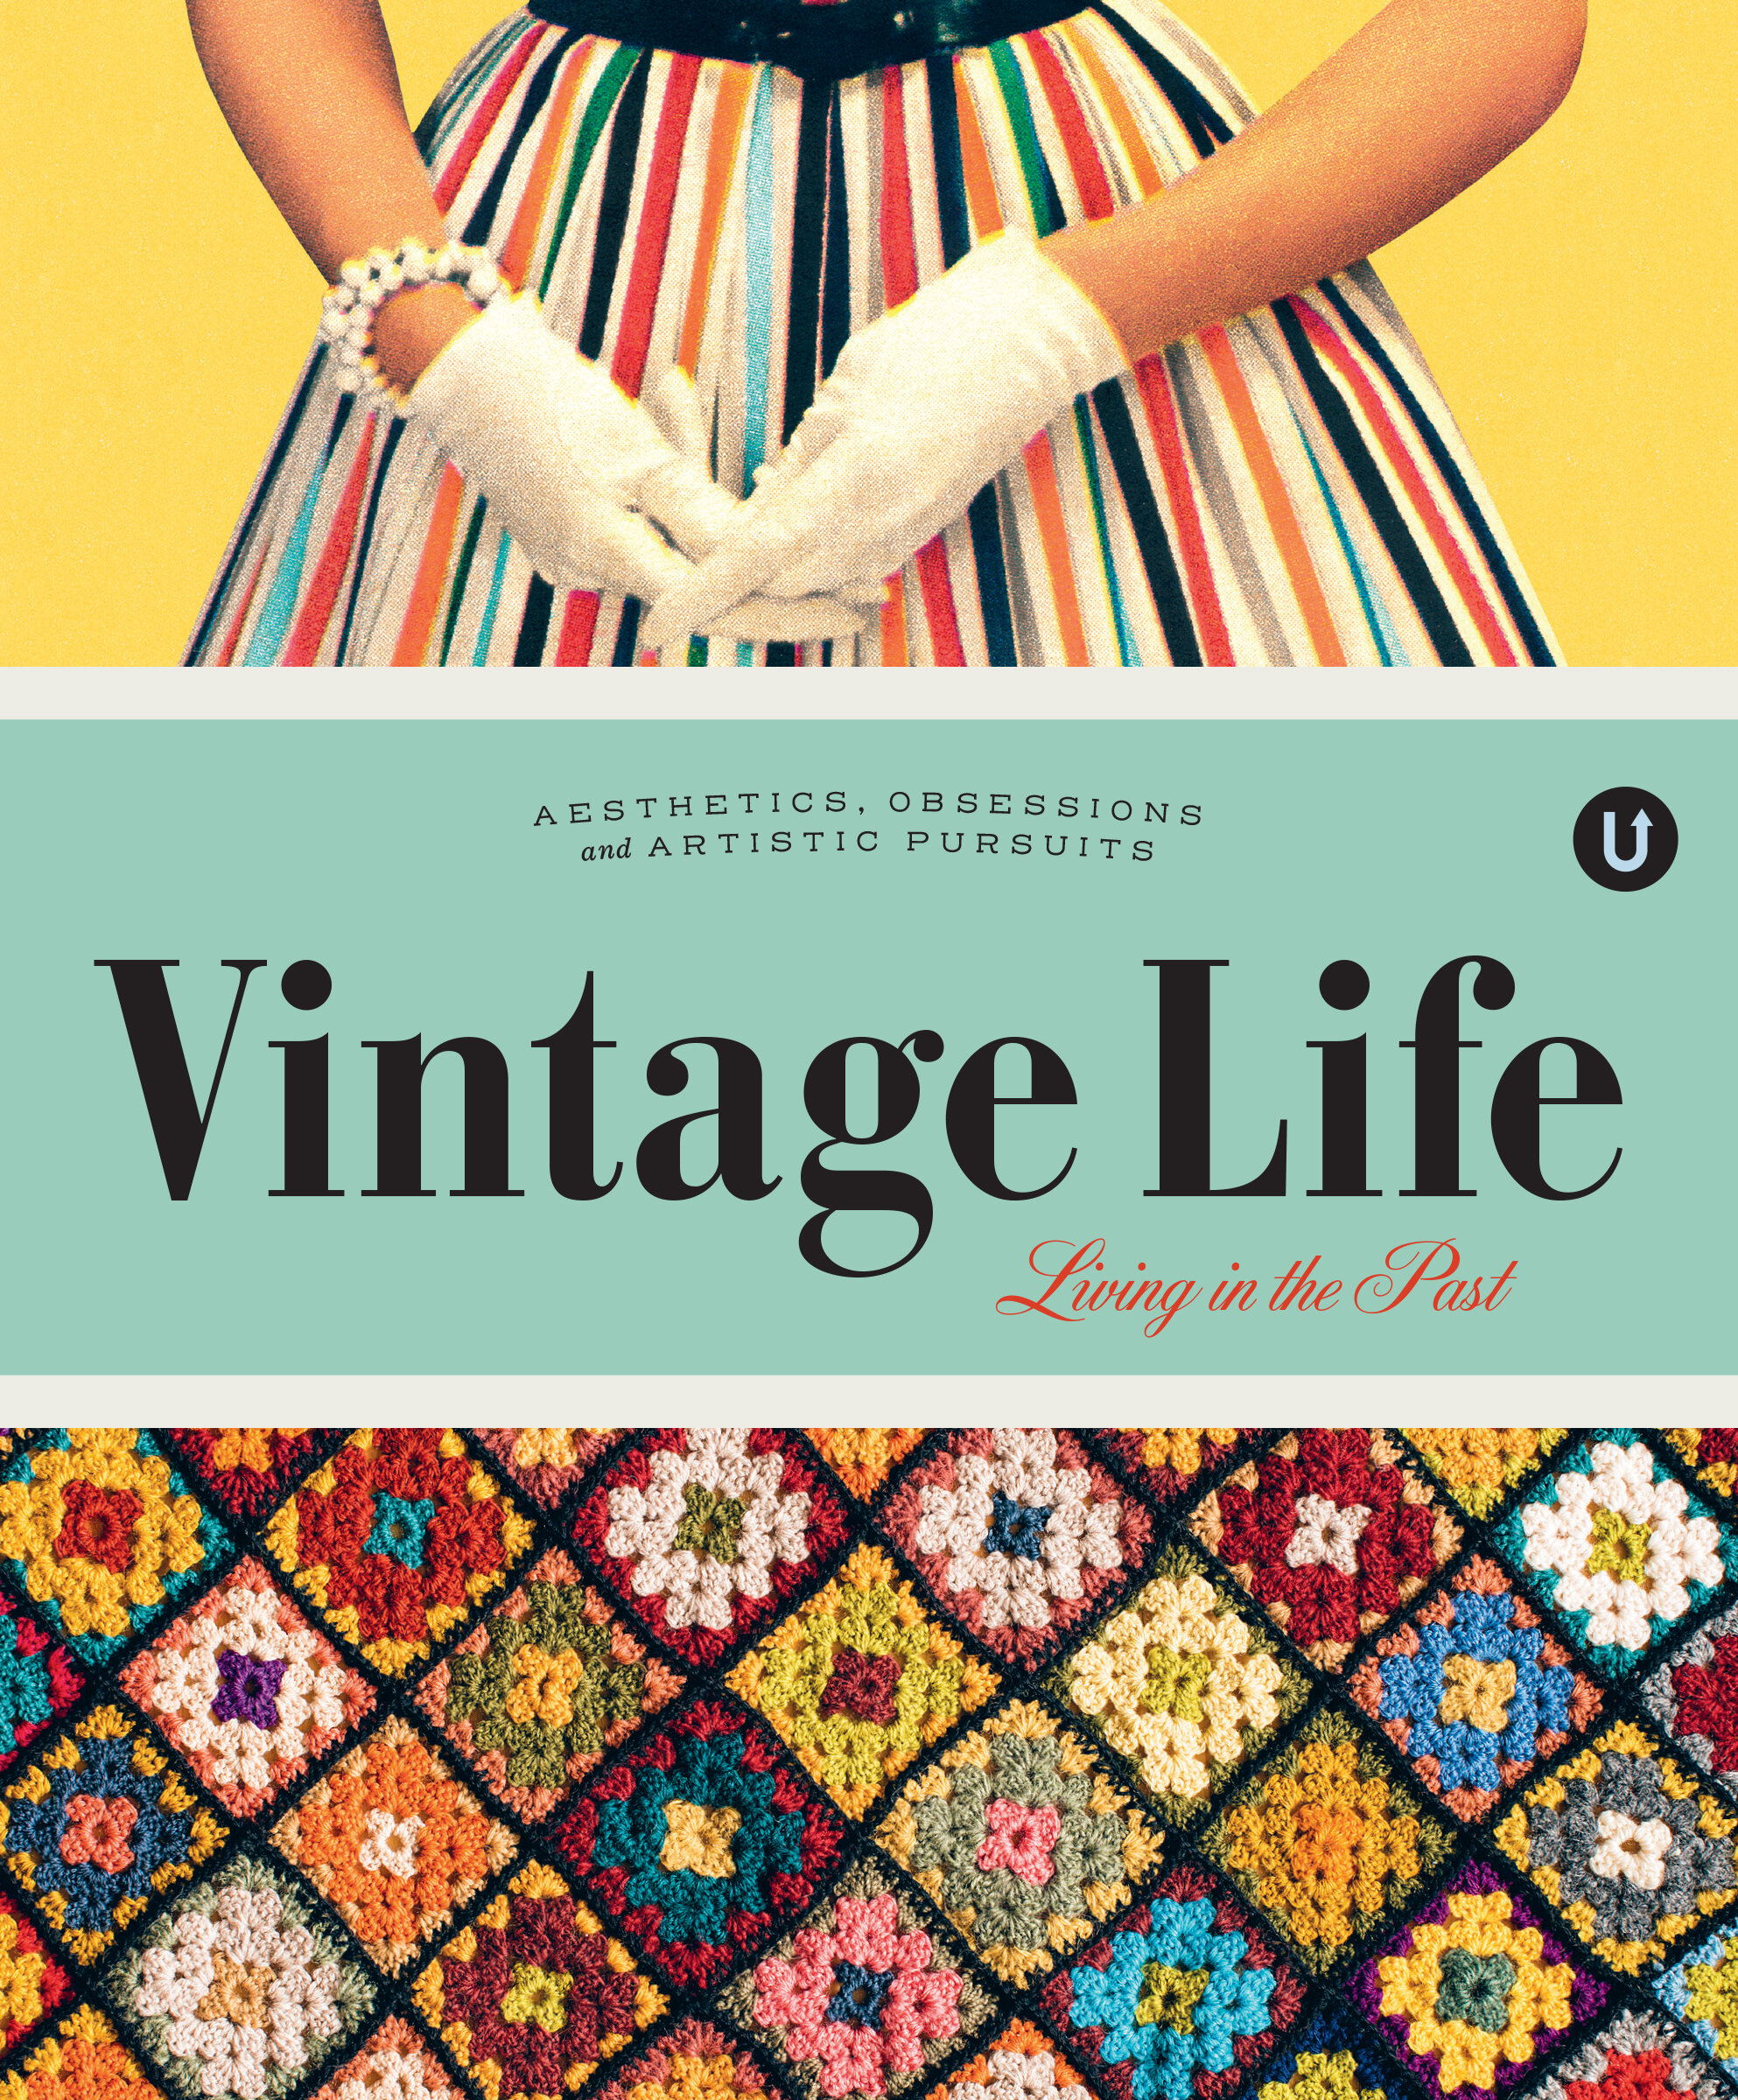 VINTAGE LIFE COVER final preview.jpg